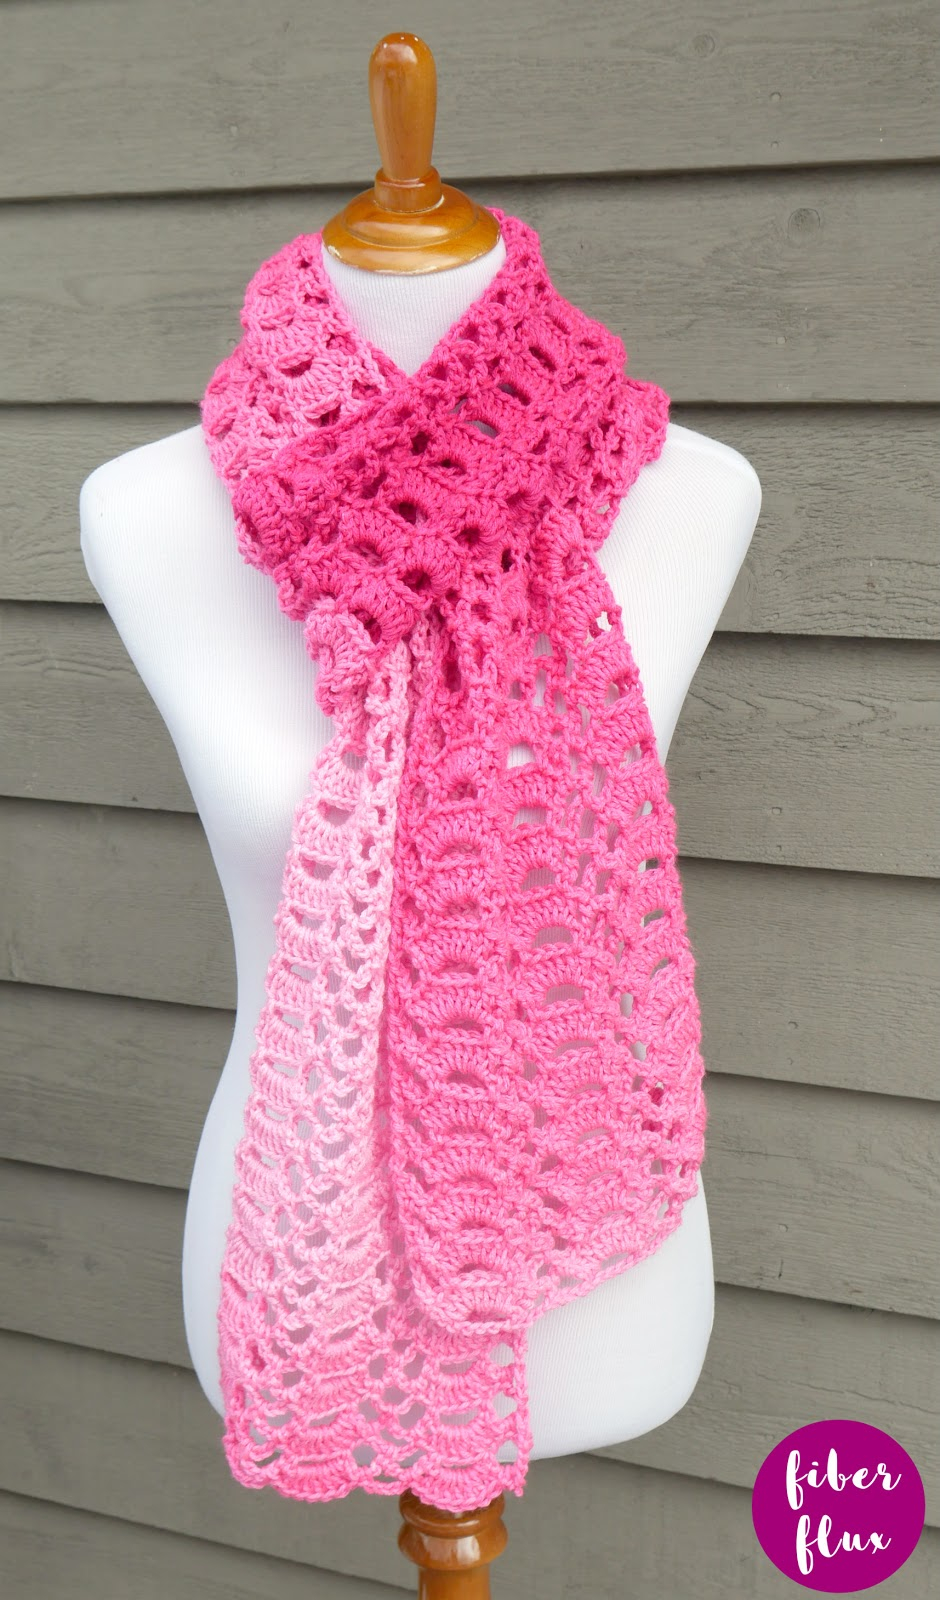 Open Knit Scarf Pattern Fiber Flux Heart You Scarf Free Crochet Pattern Video